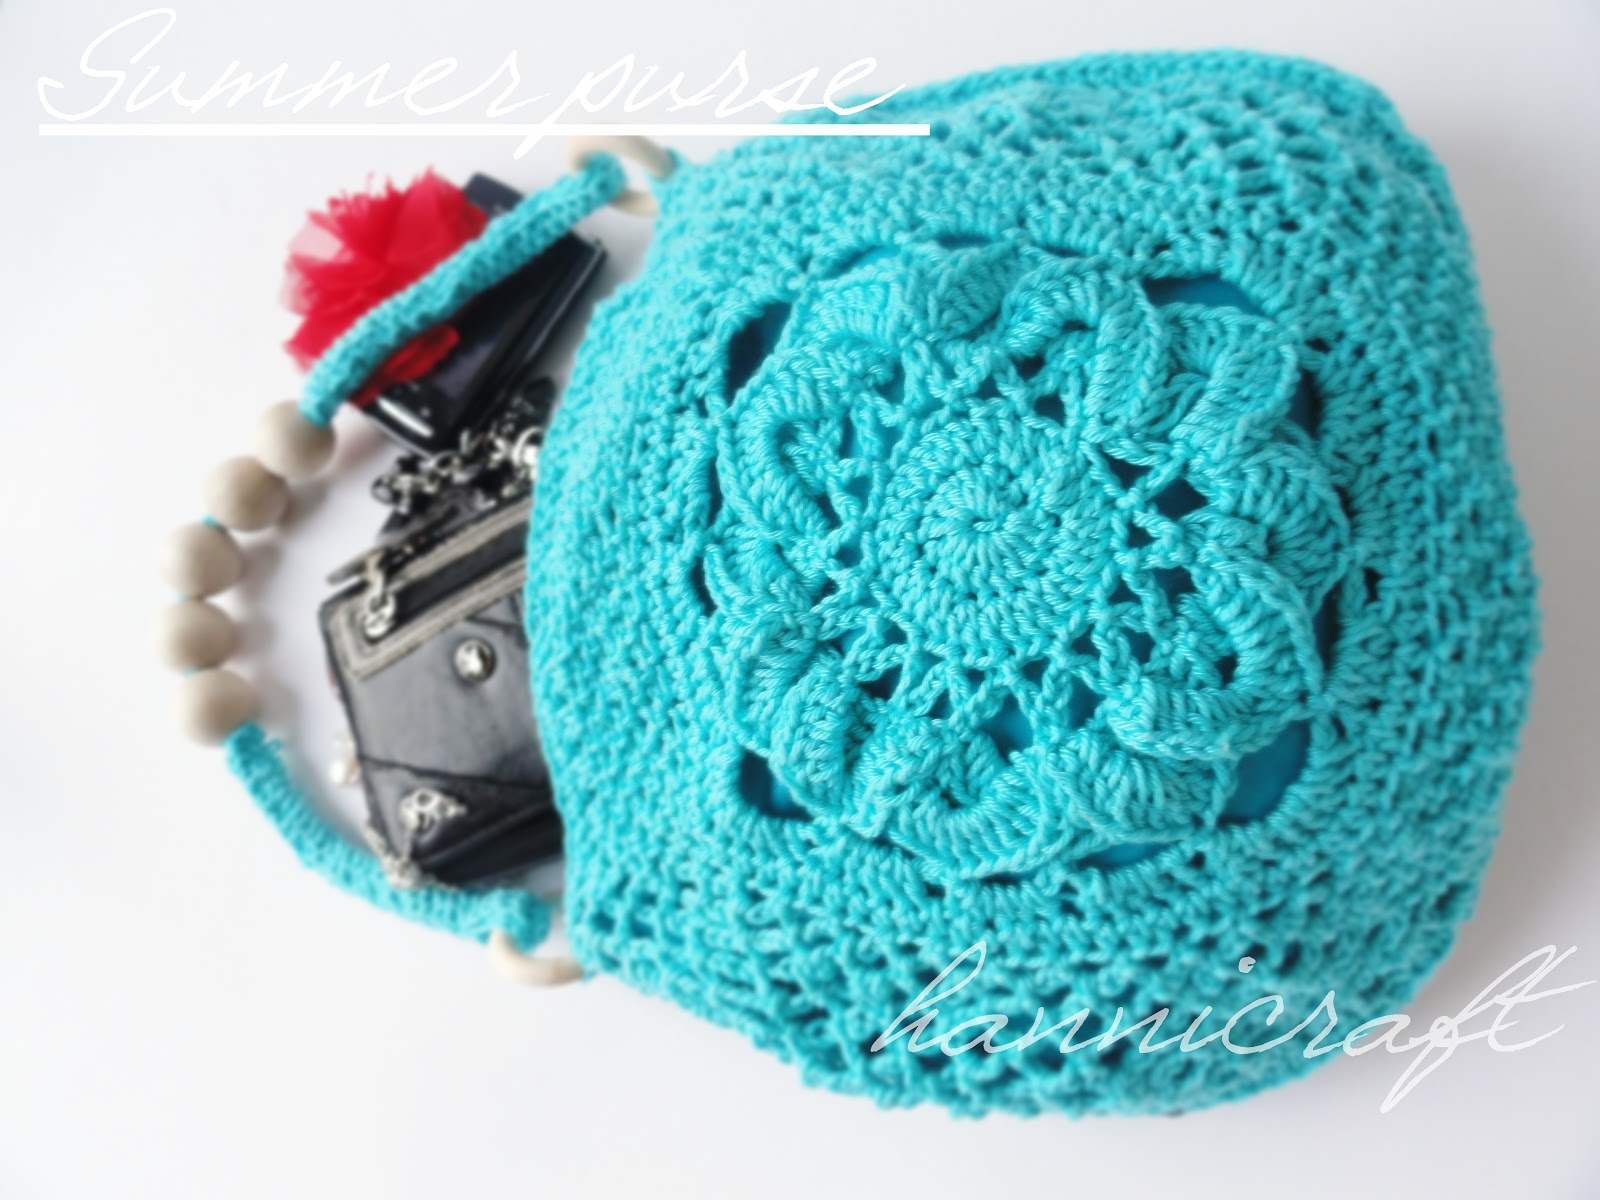 Crochet purse for the Summer